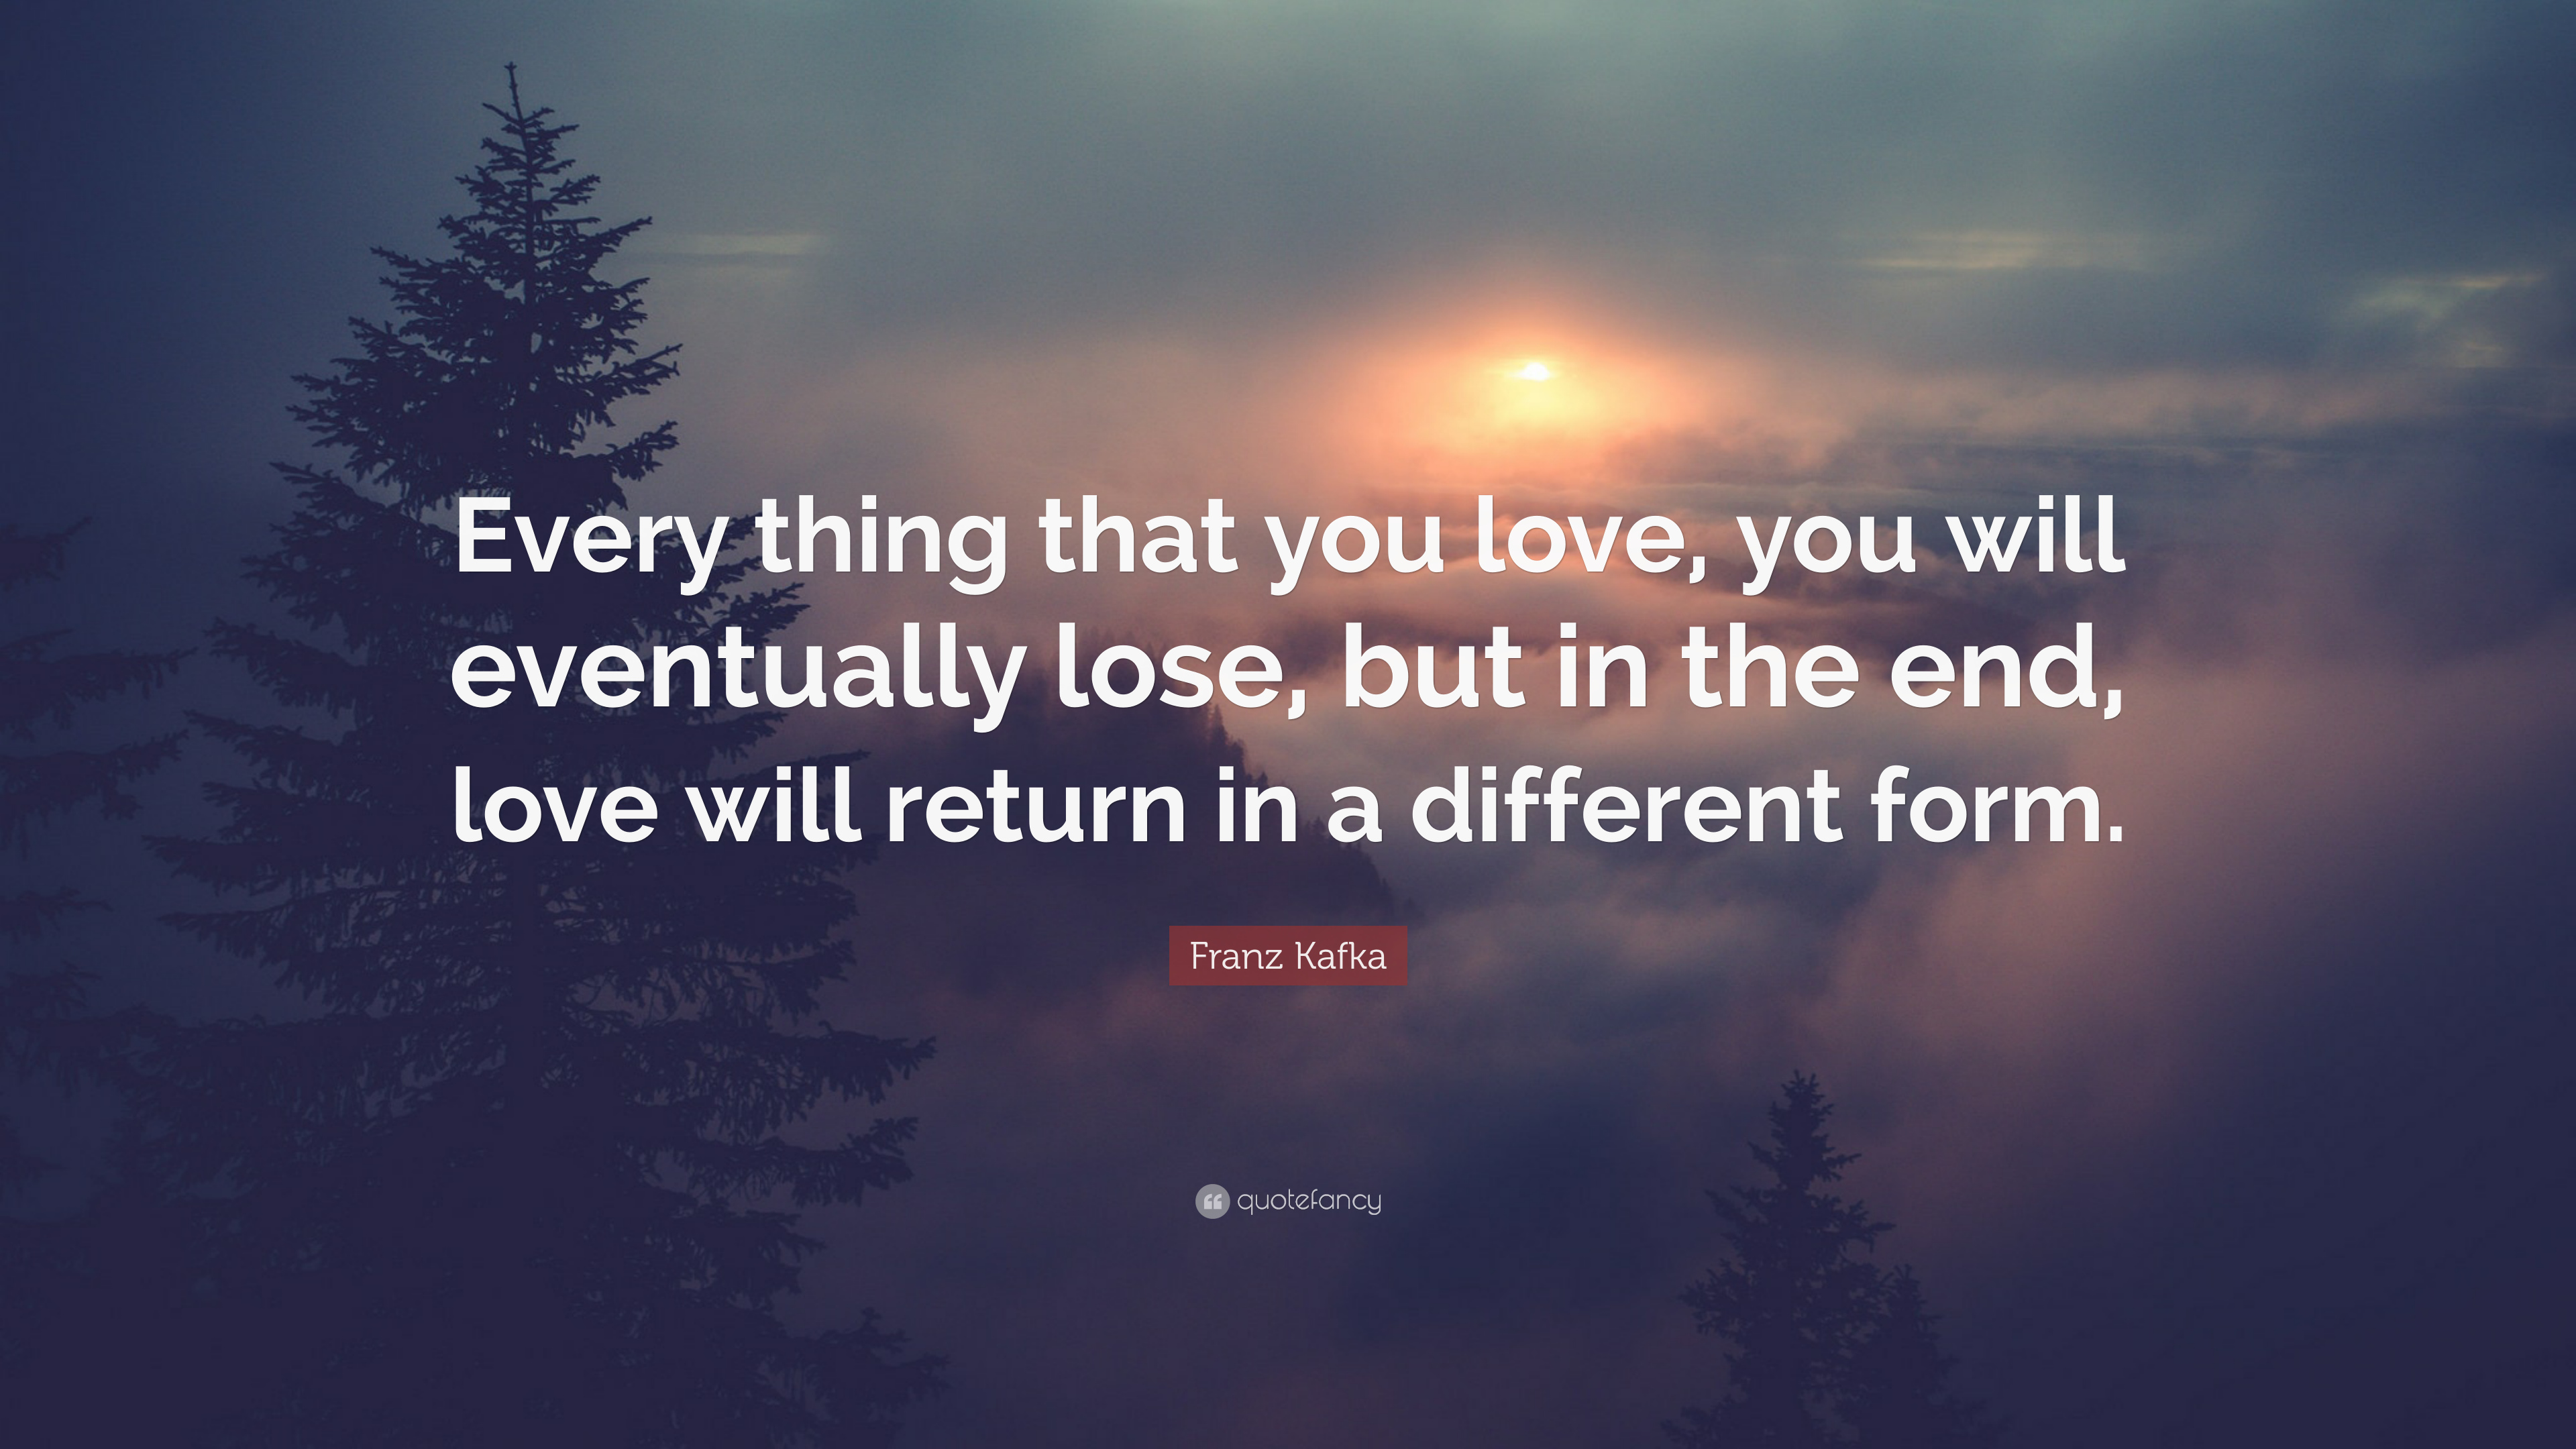 Franz Kafka Quote: Every thing that you love, you will